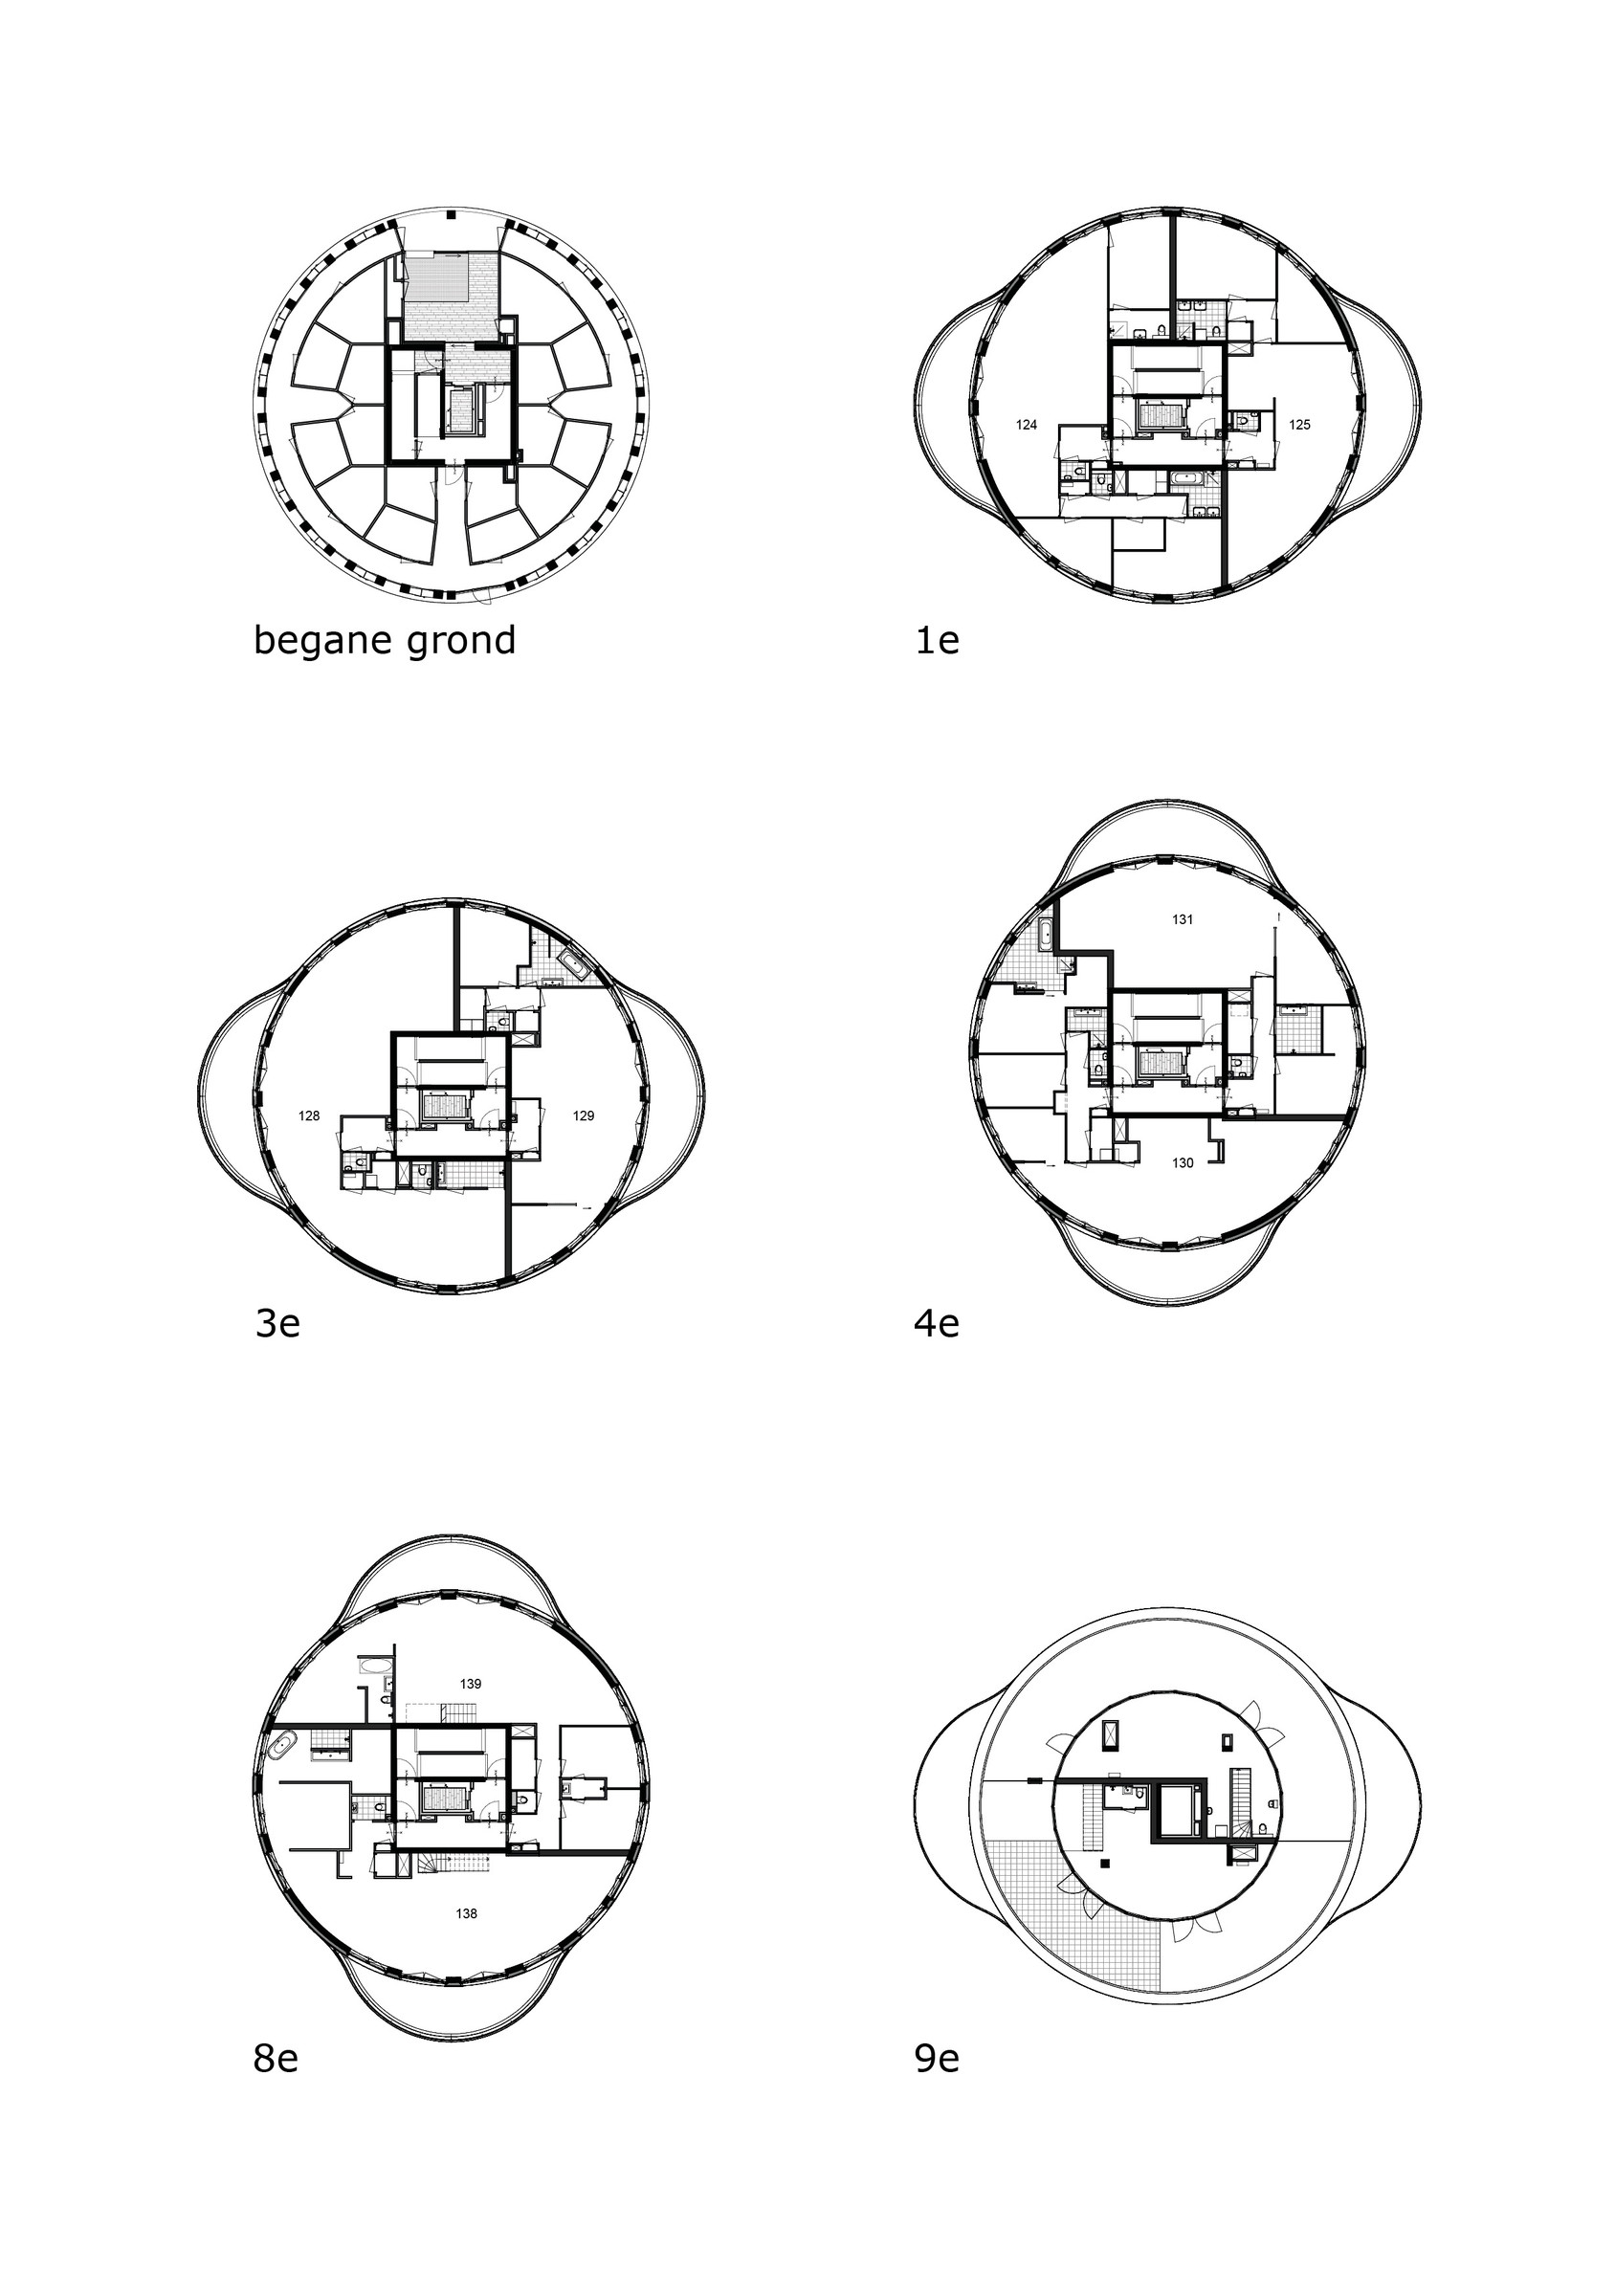 Zecc_Architecten-housing-Meysters_Buiten-round_plan.jpg